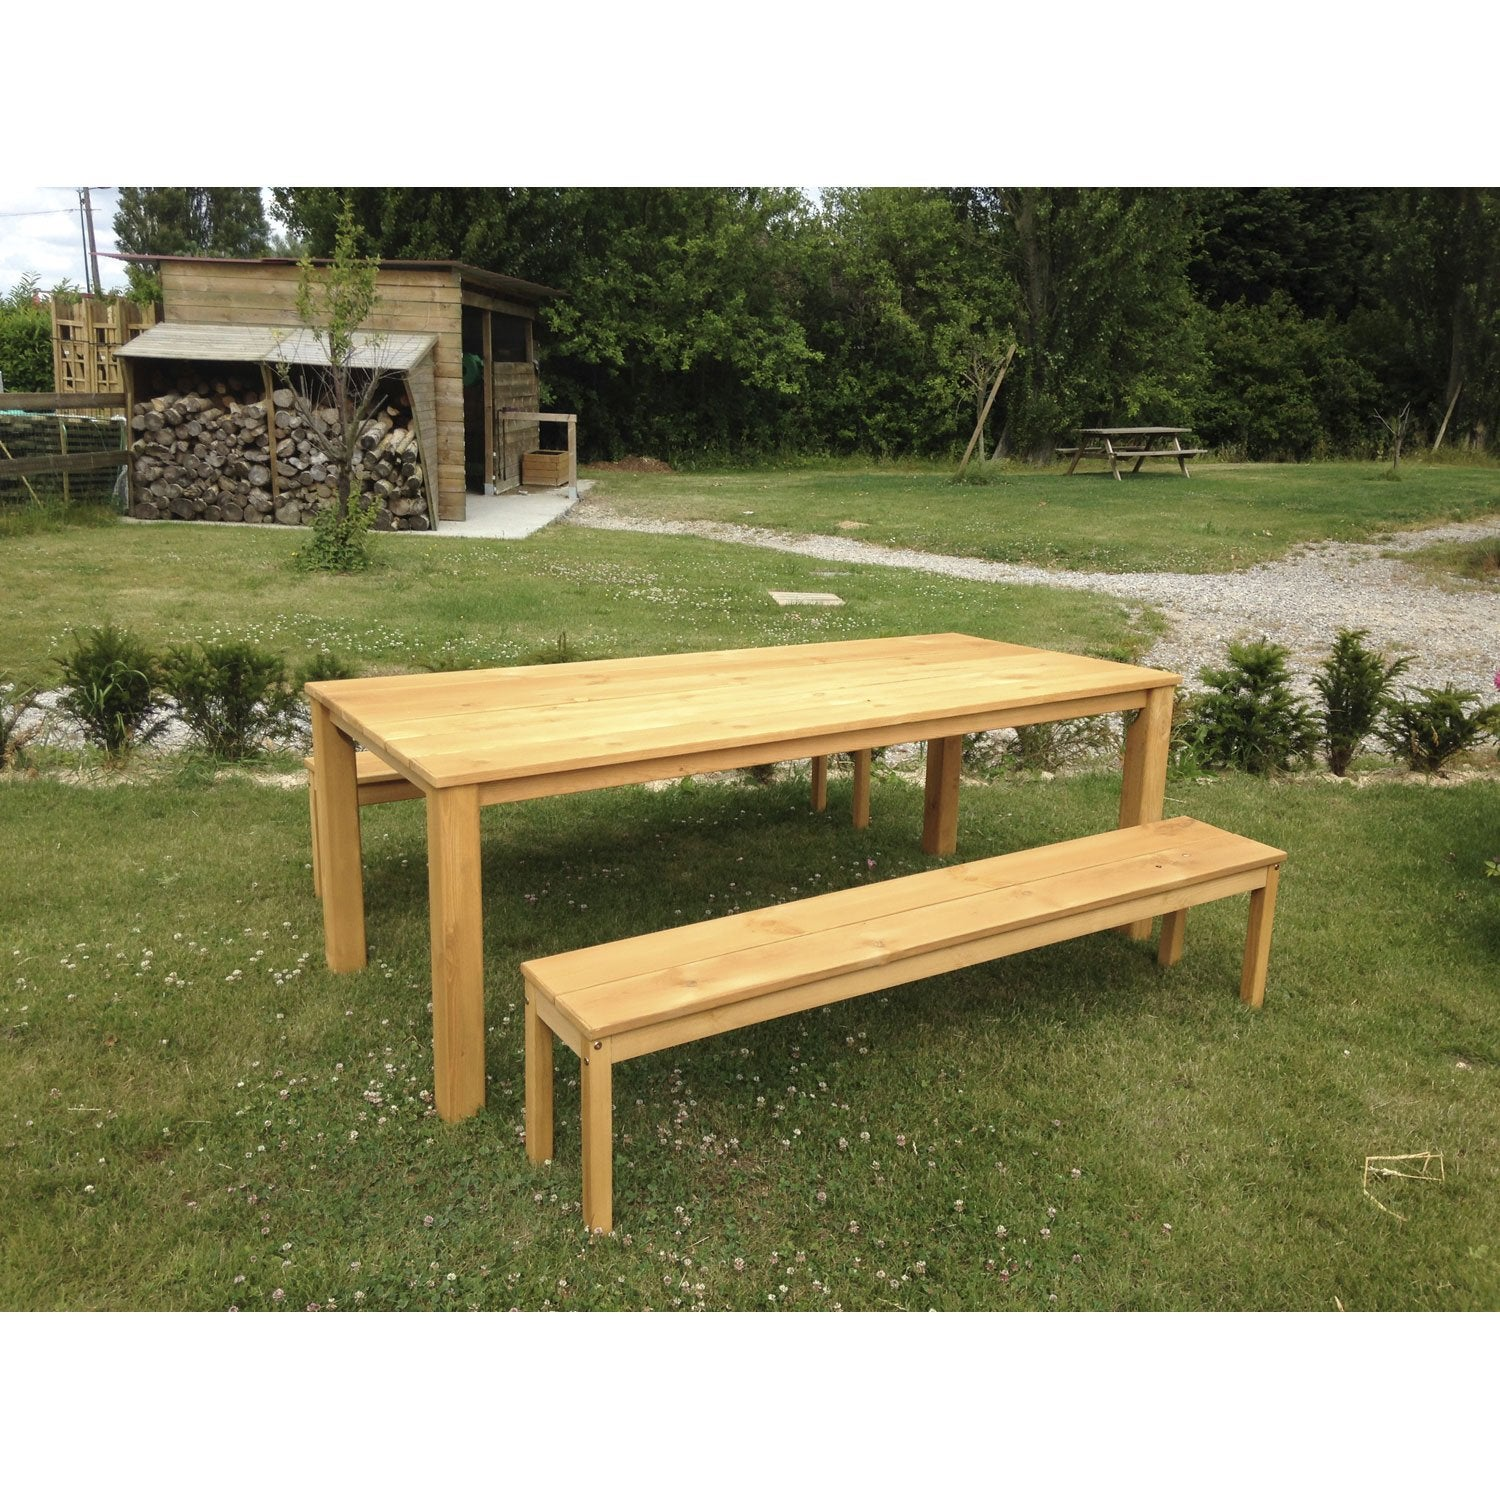 Salon de jardin set ferme bois ch ne vieilli 1 table 2 bancs leroy merlin for Plan banc de jardin